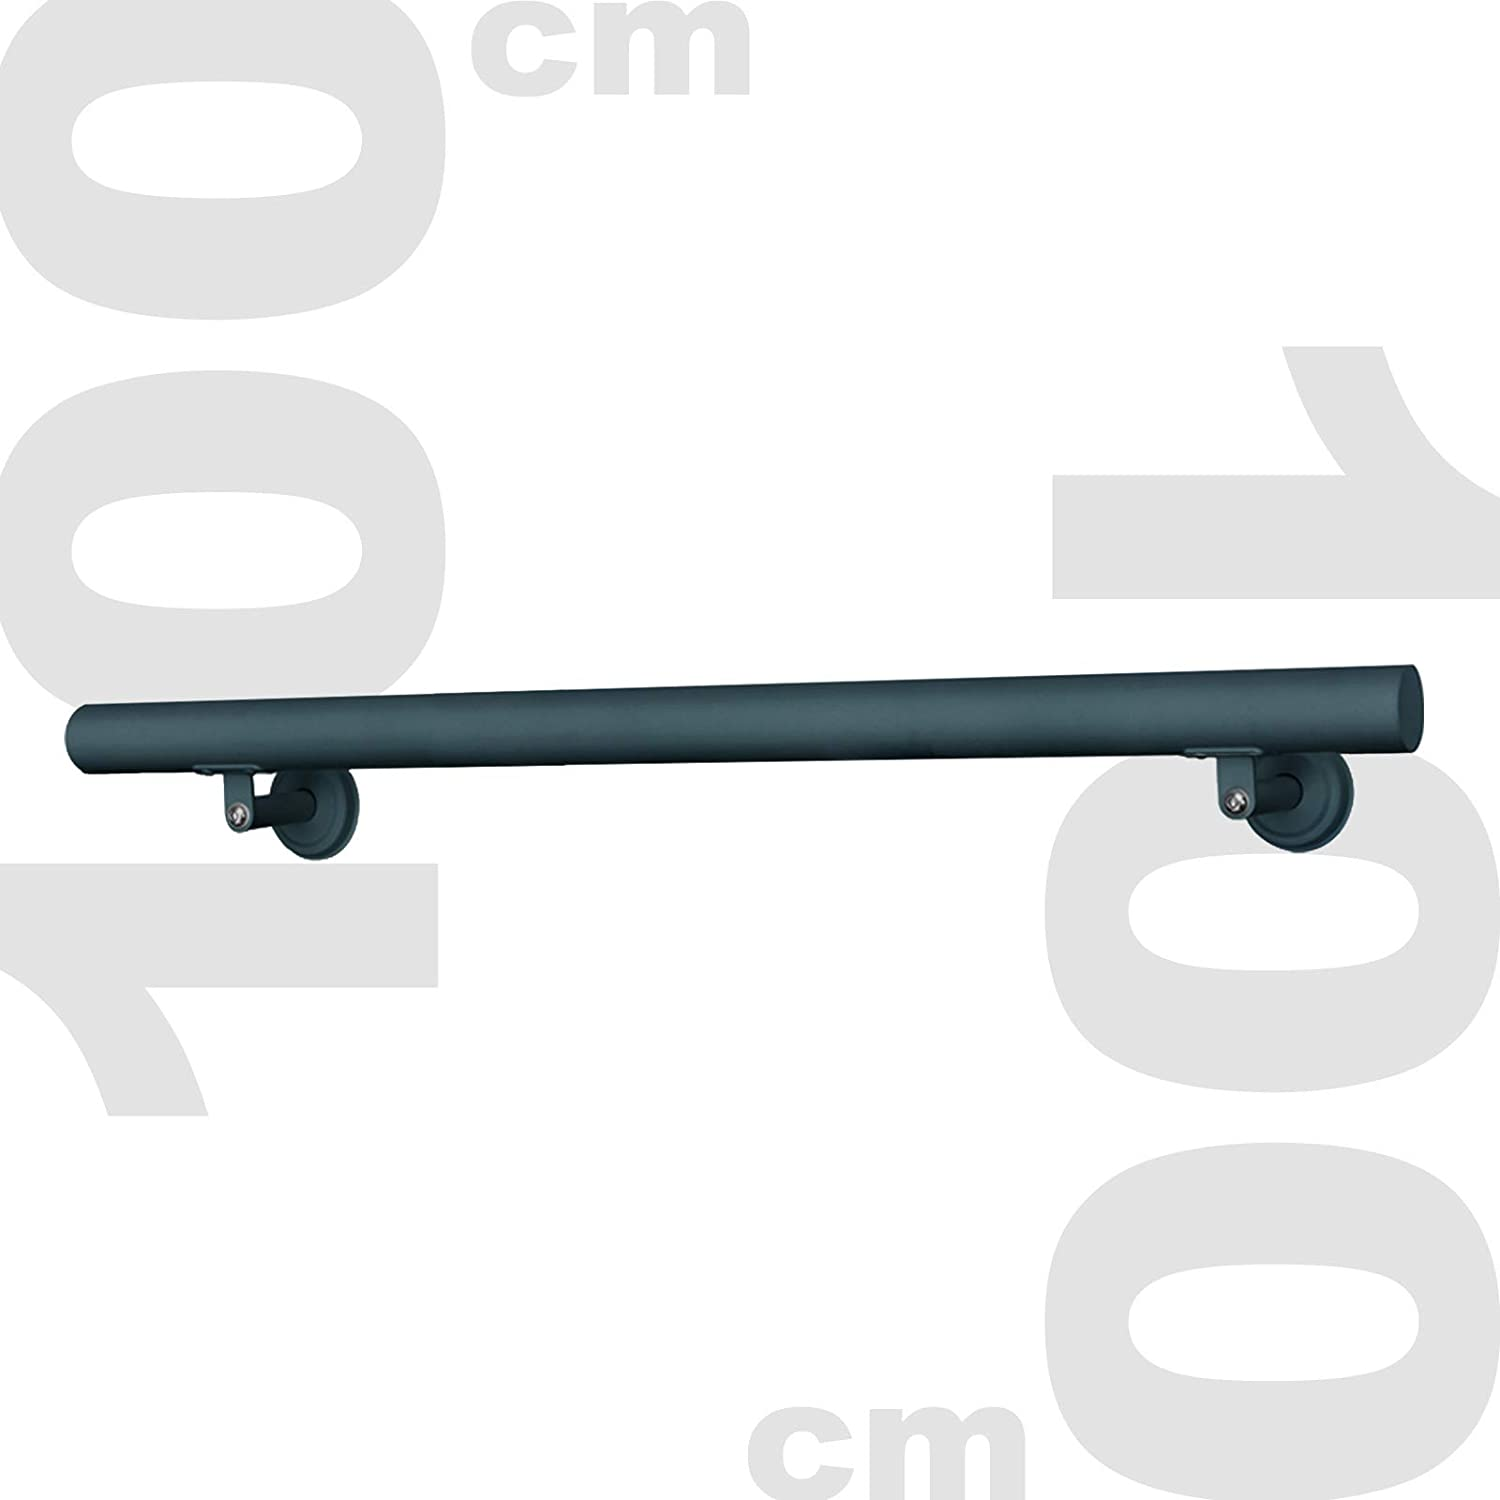 Kit Main courante Rambarde Support mural 100cm Anthracite Escaliers Poign/ée